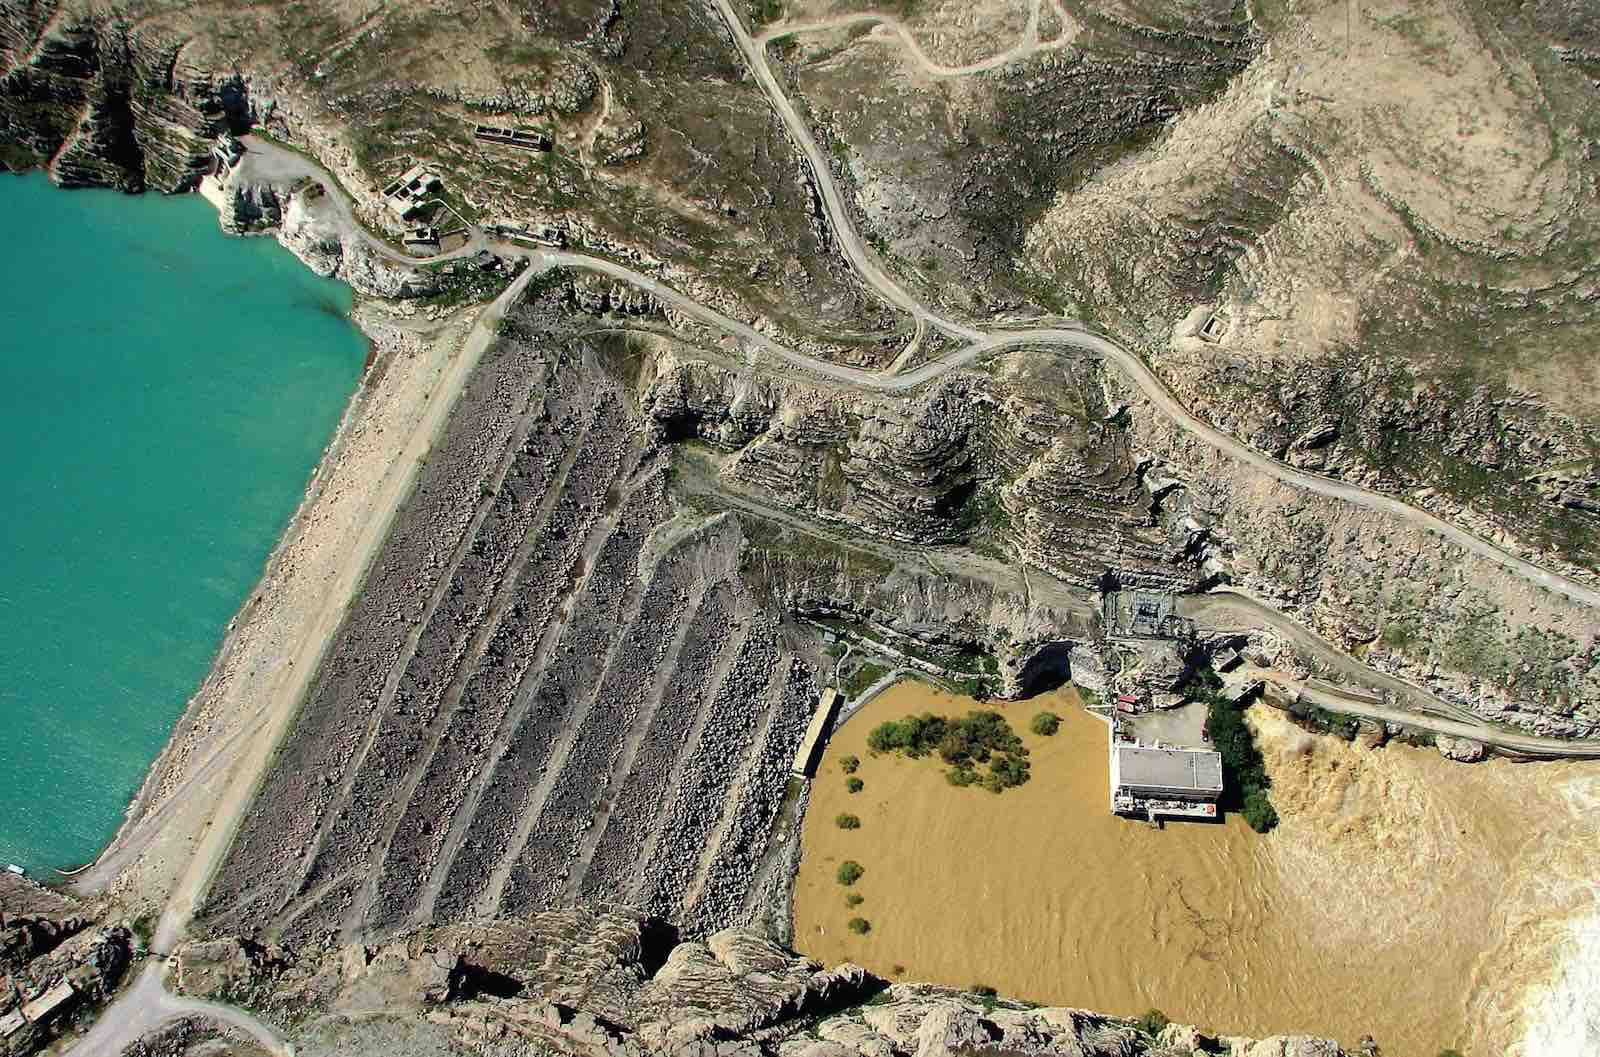 Afghanistan: Water management for peace | The Interpreter - The Interpreter